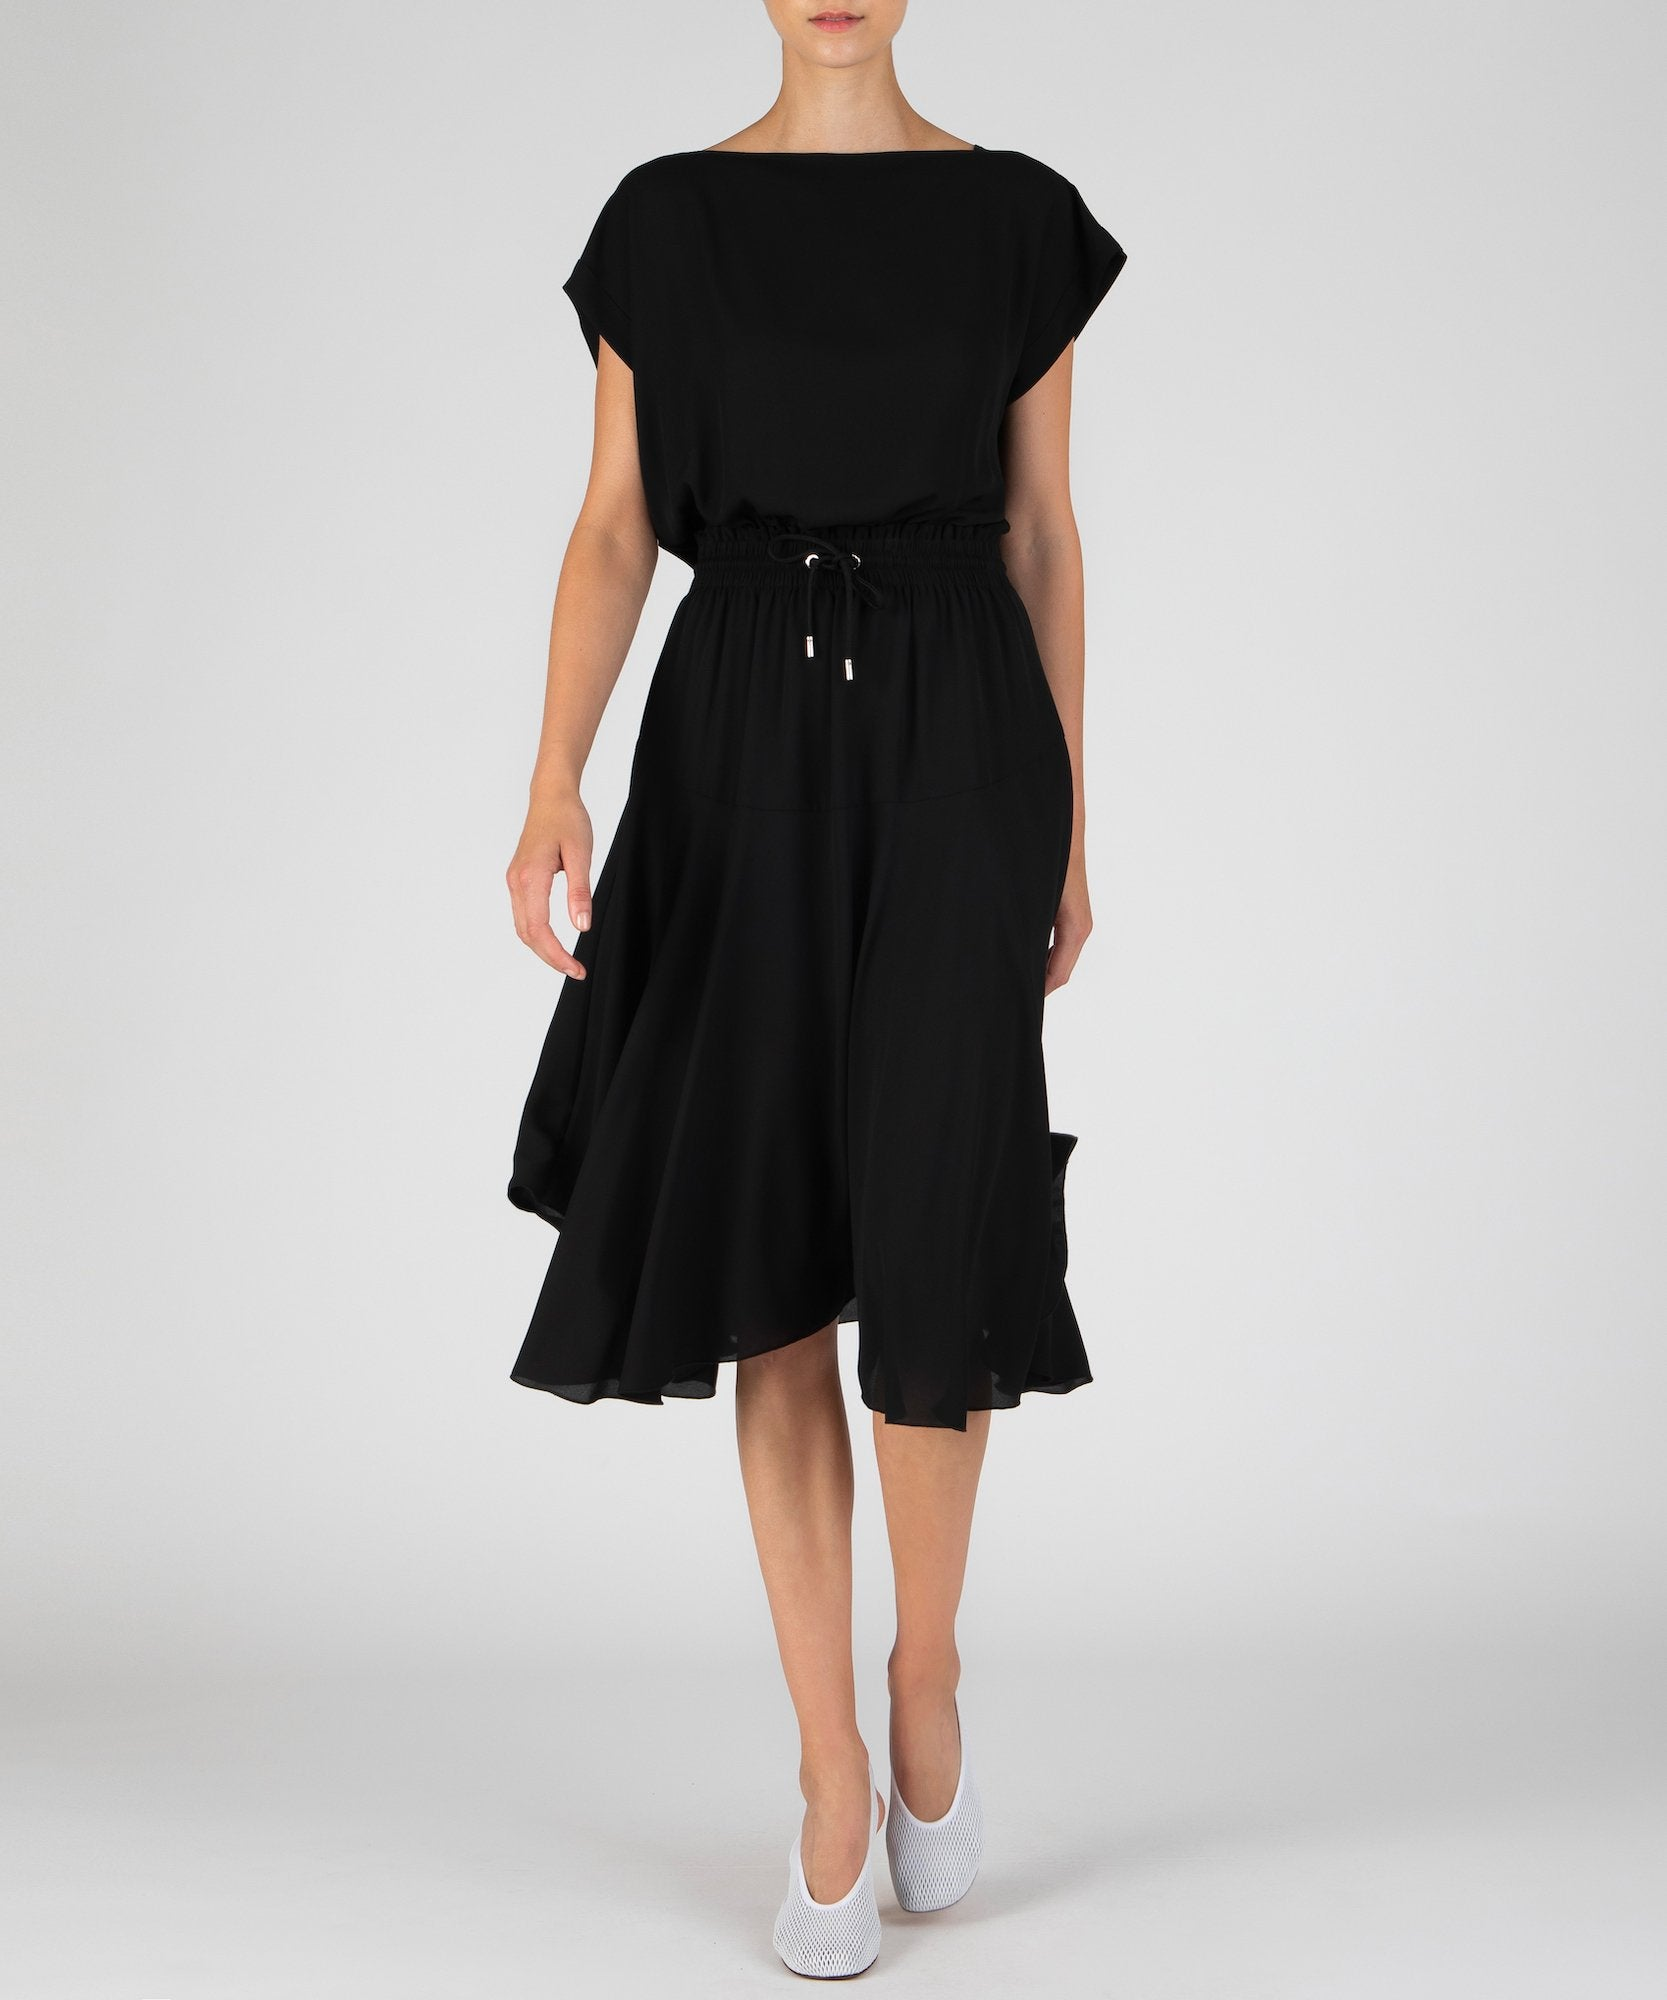 Black Georgette Gathered Waist Dress - Women's Casual Dress by ATM Anthony Thomas Melillo